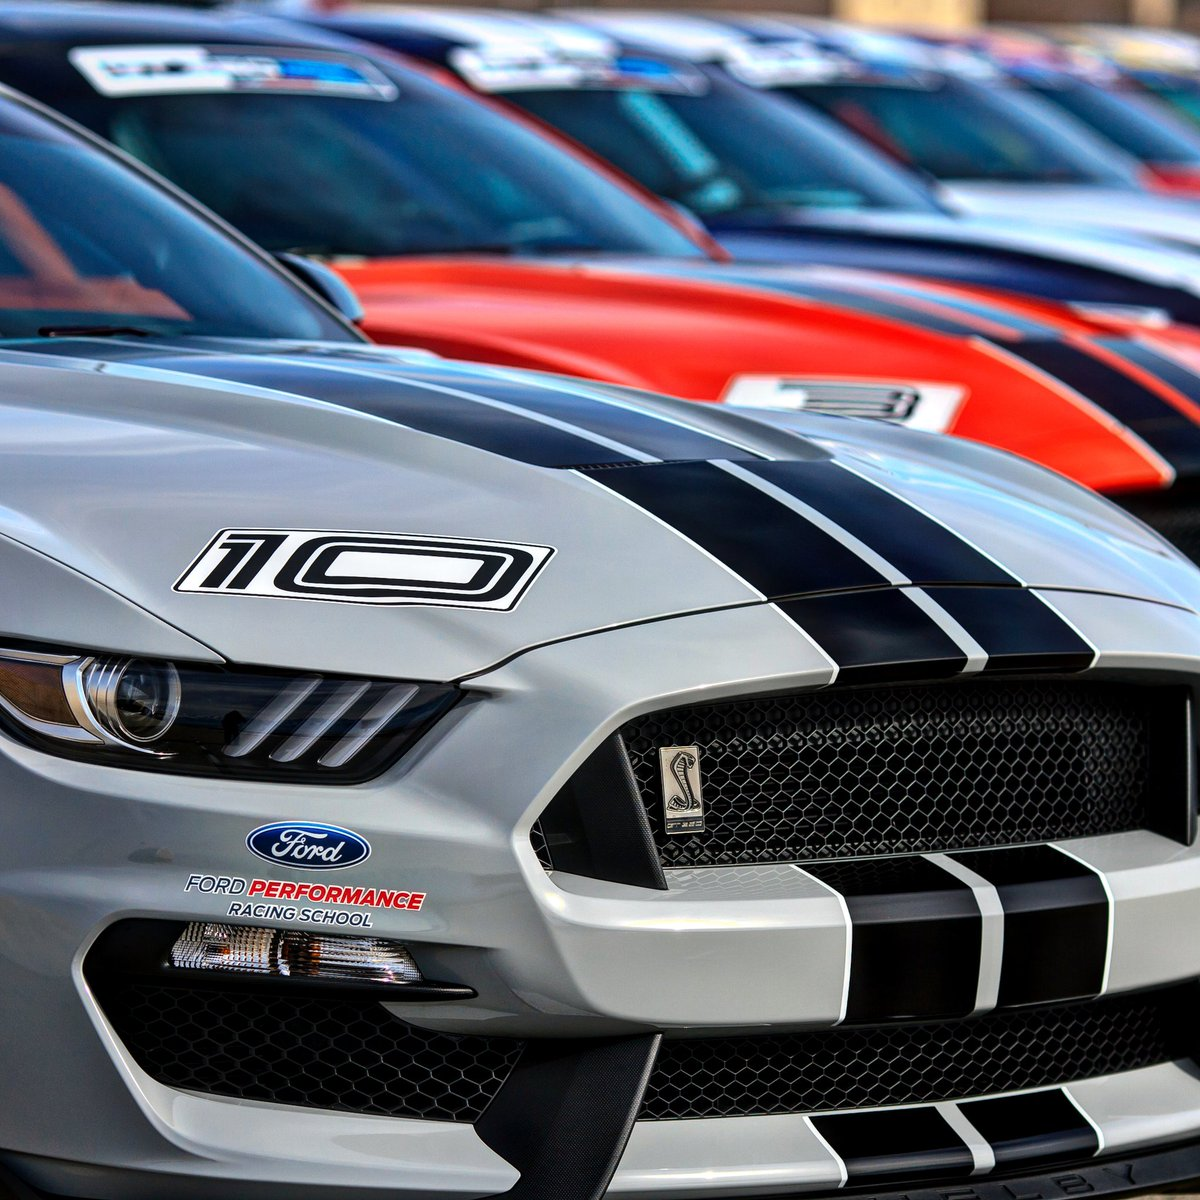 ford performance racing school on twitter it s frontendfriday ya ll let s get it twitter